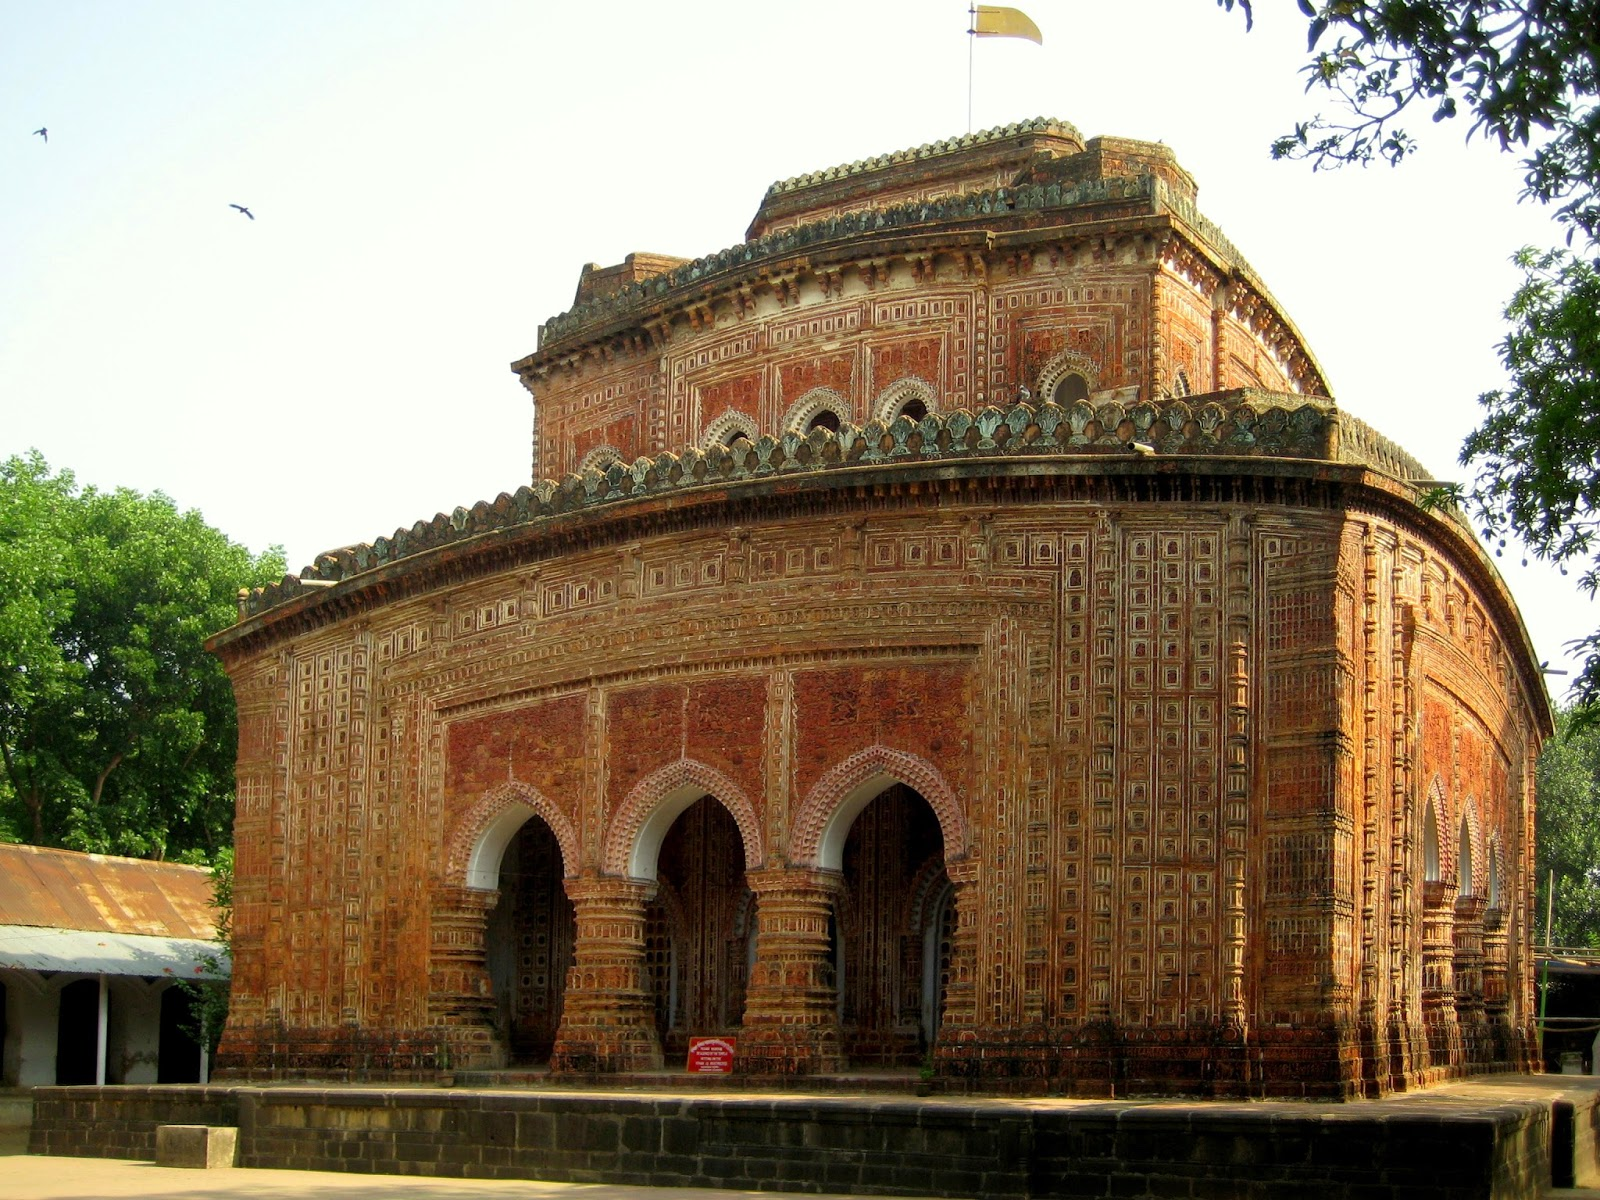 historical places in dhaka Buy top 20 places to see in dhaka, bangladesh (travel guide): read 2 books  reviews - amazoncom.